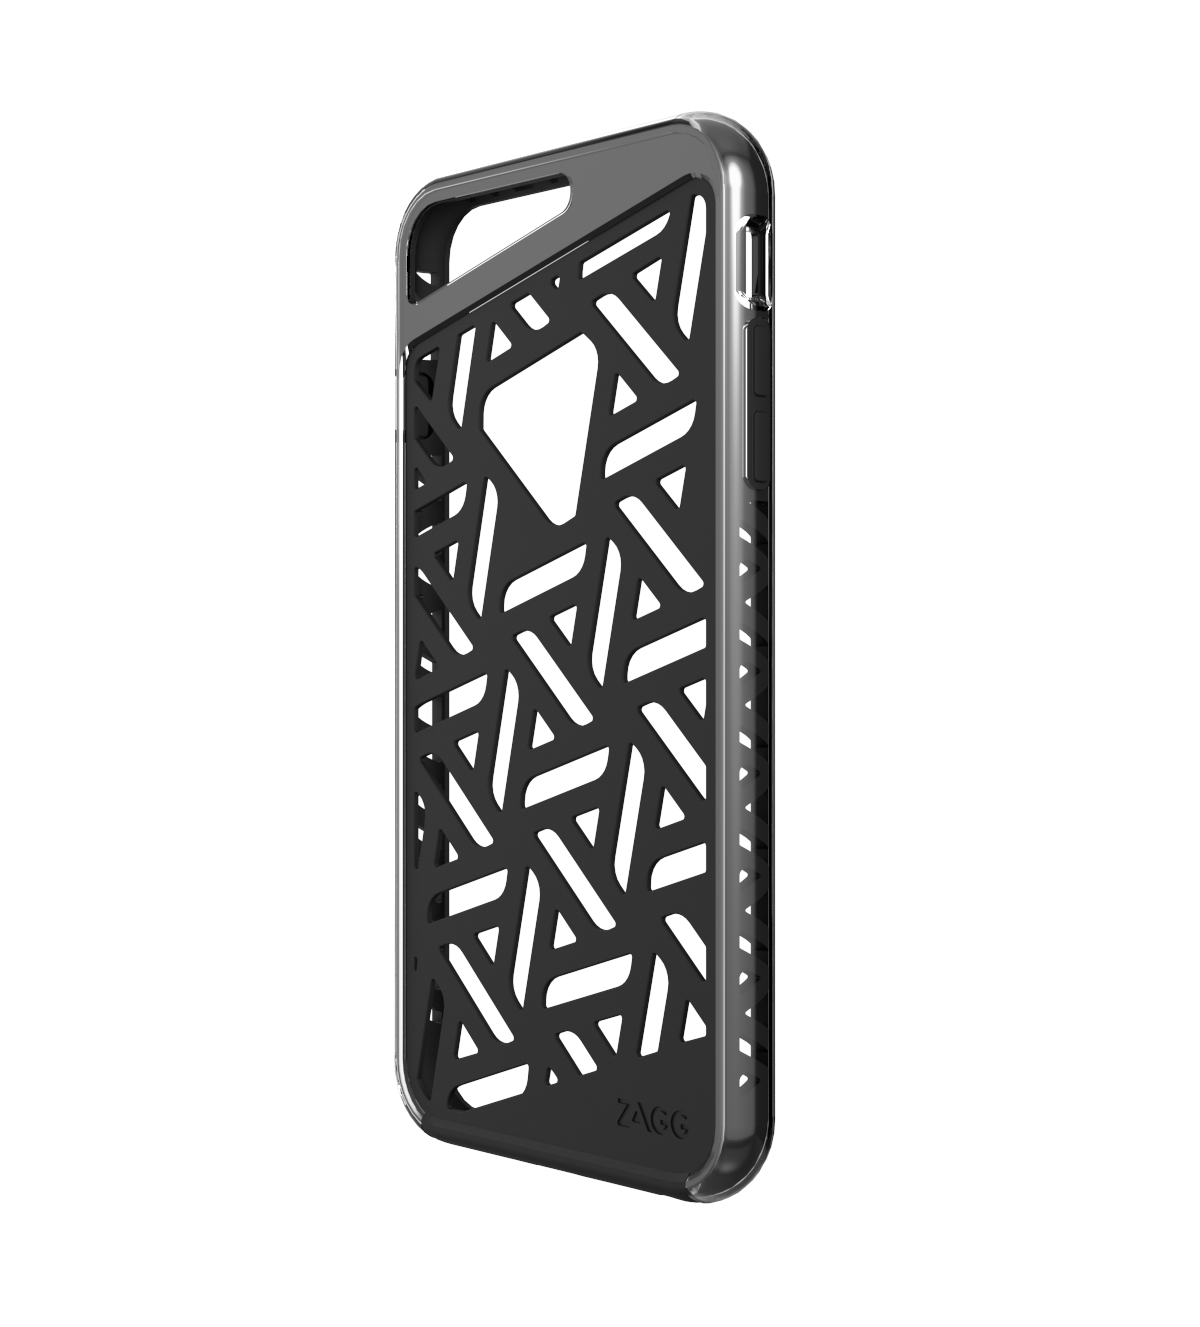 DropGuard for the Apple iPhone 6/6s